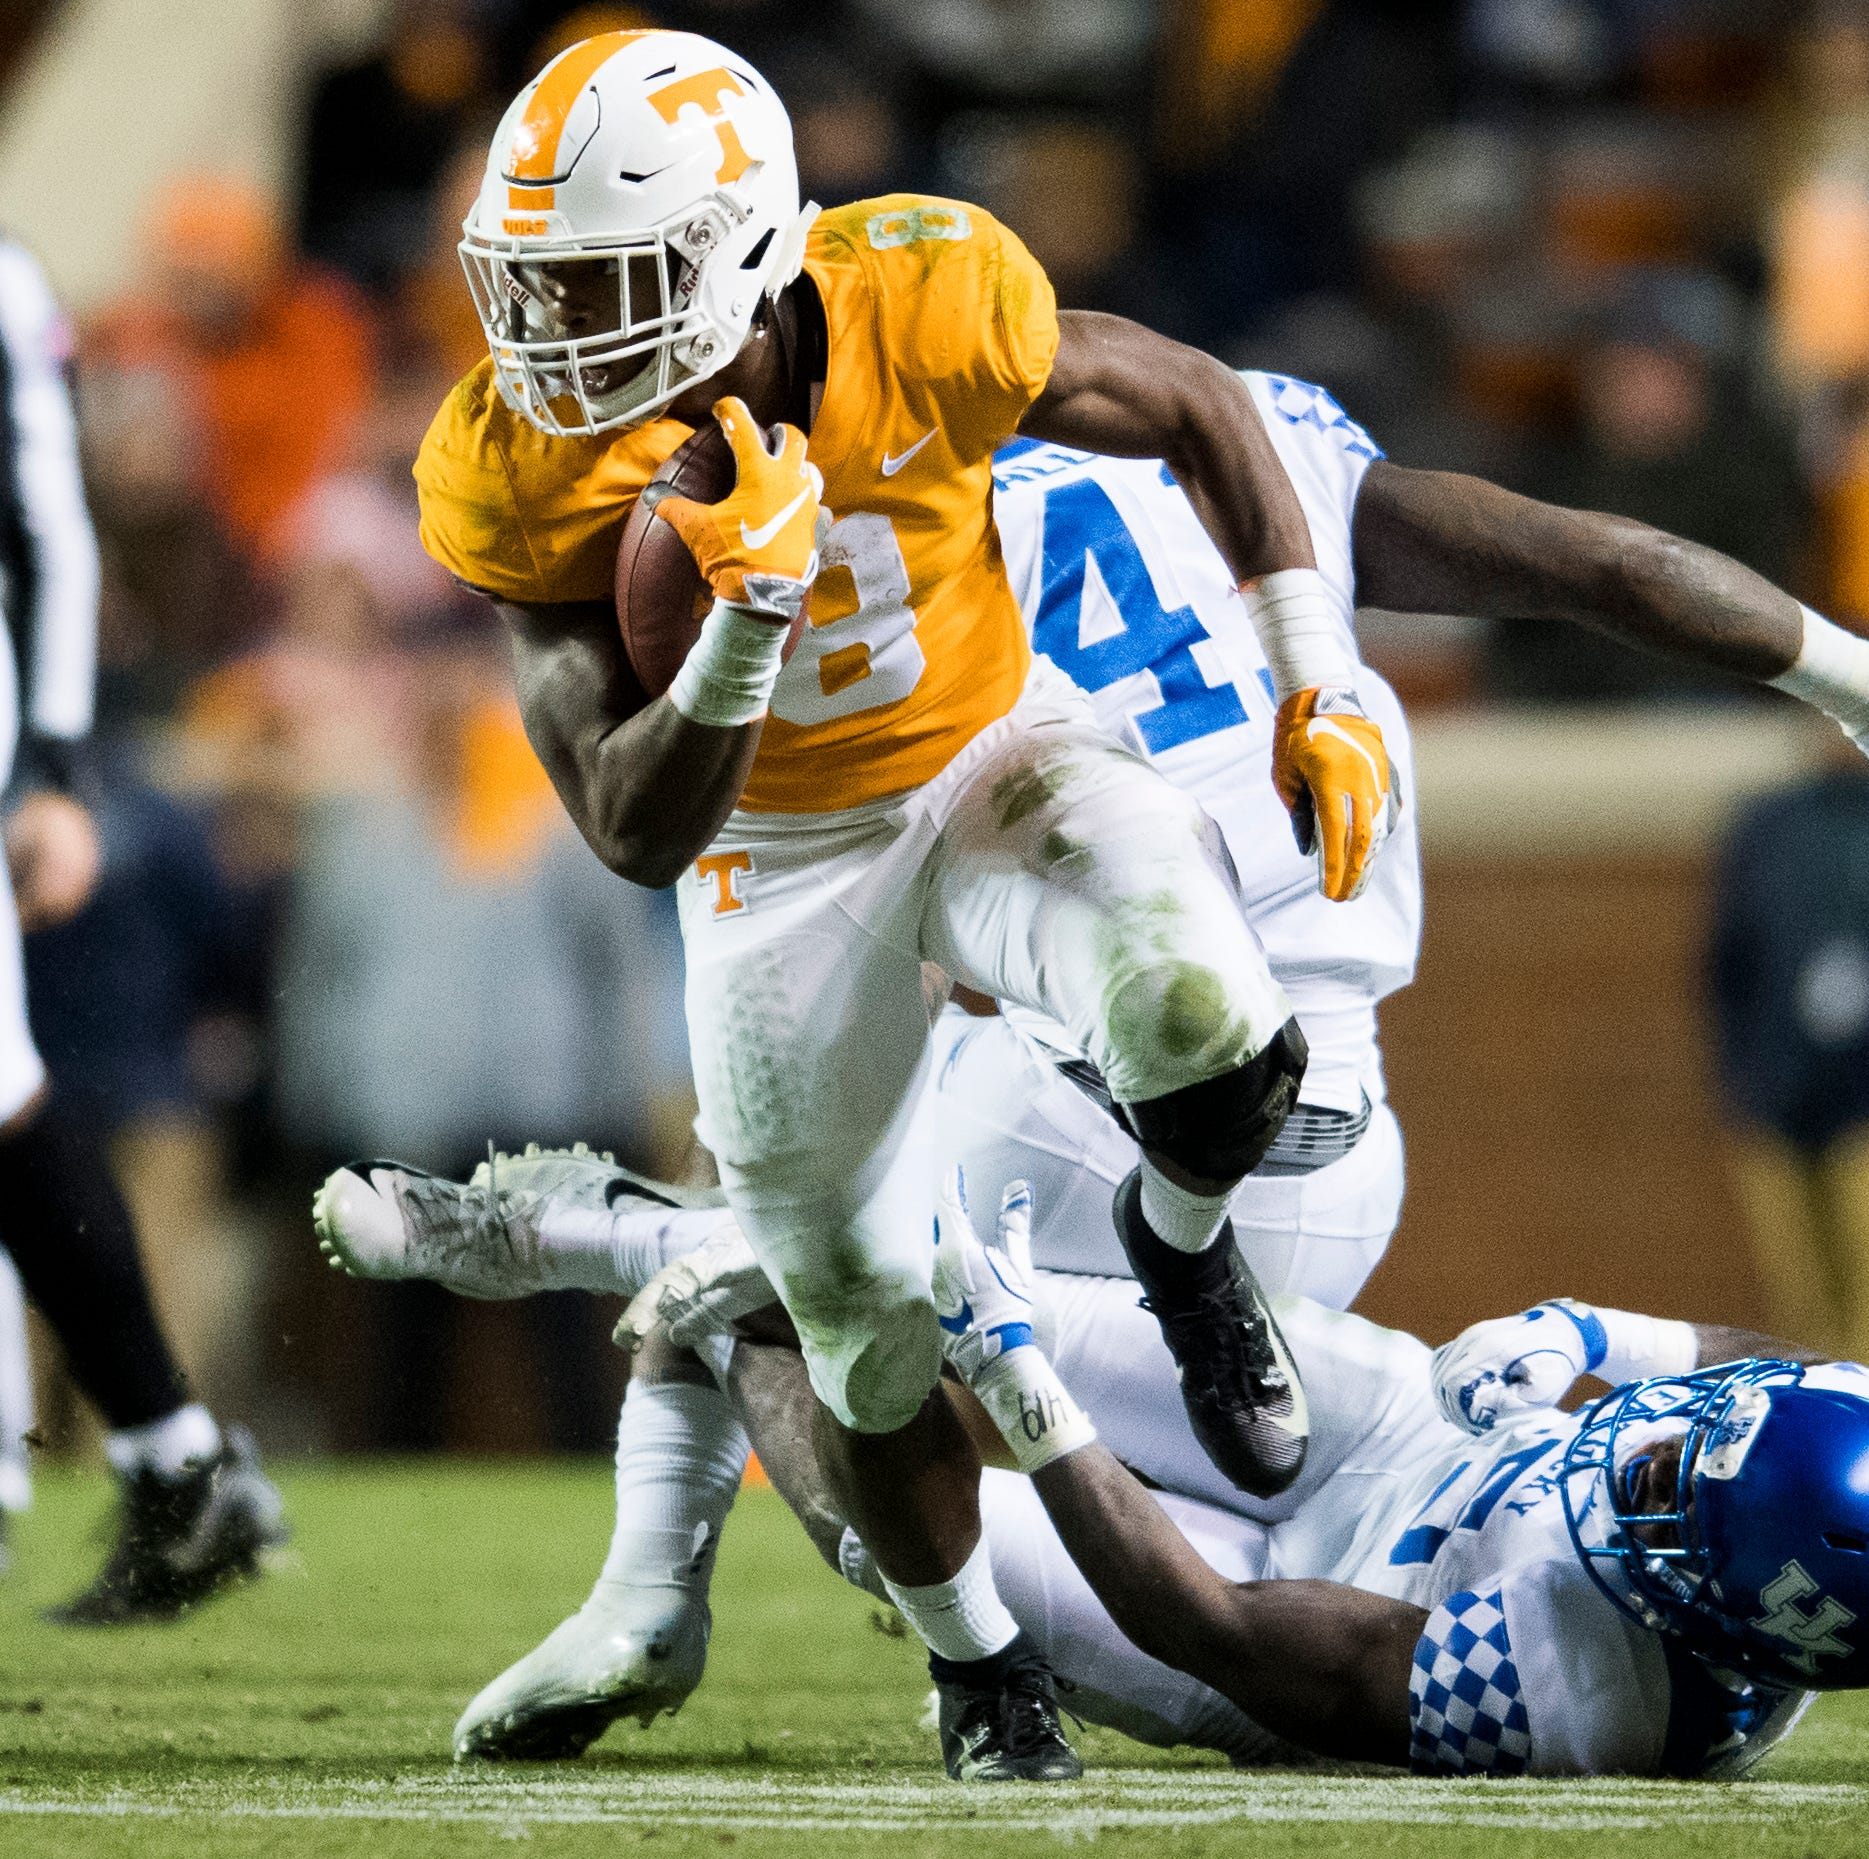 UT Vols' 2019 recruiting class needs an elite running back